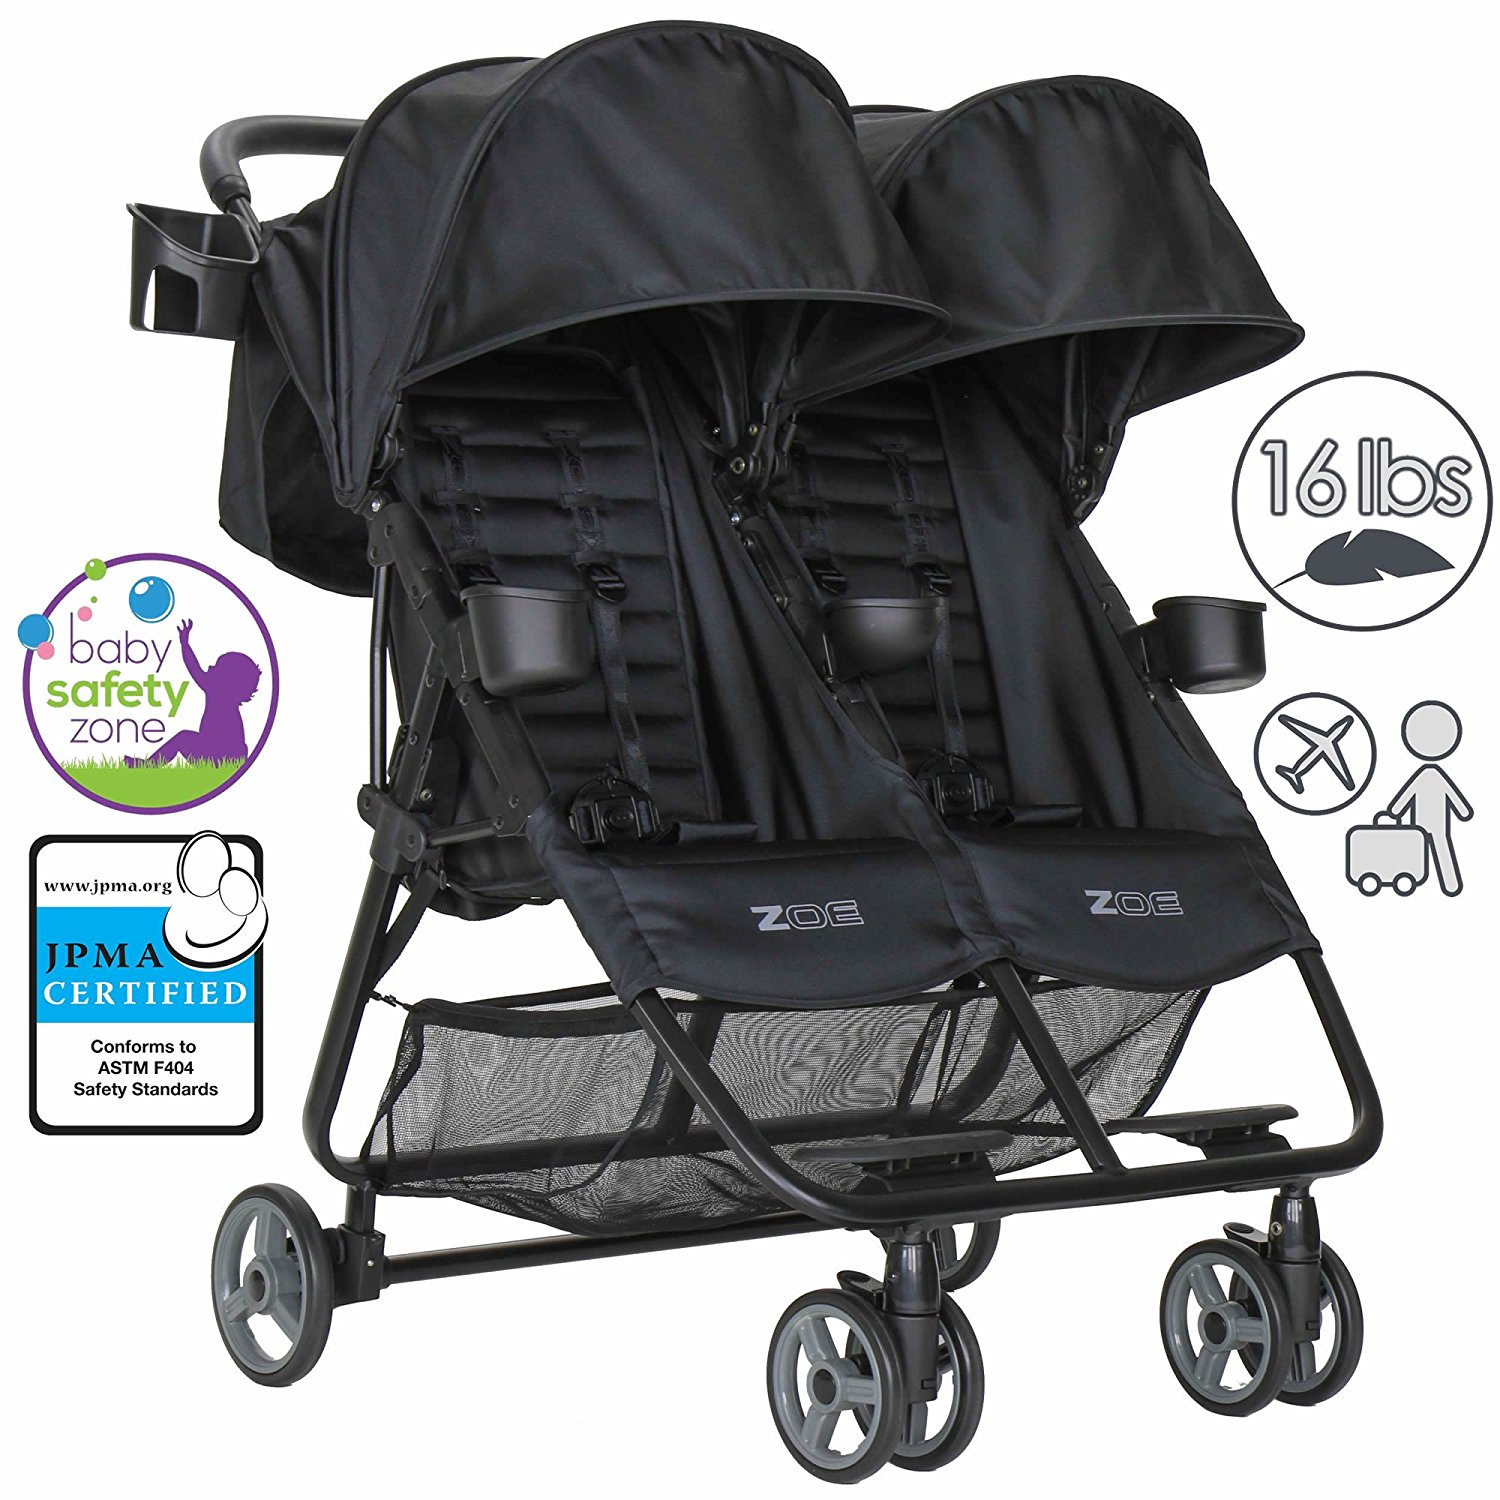 0 ZOE Umbrella XL2 Double Stroller